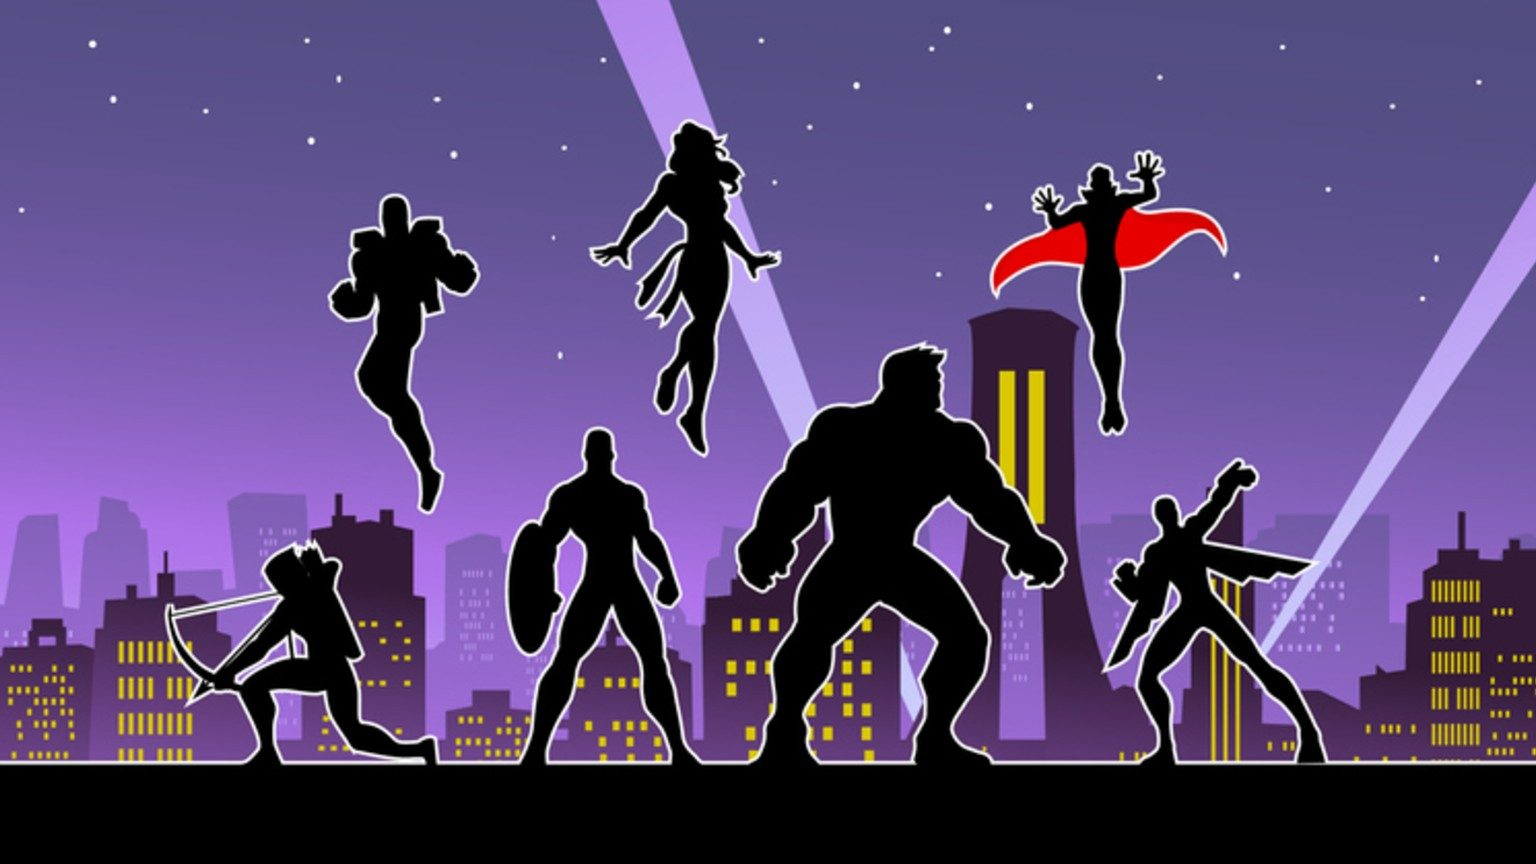 Superheroes Team Silhouette in the City at Night